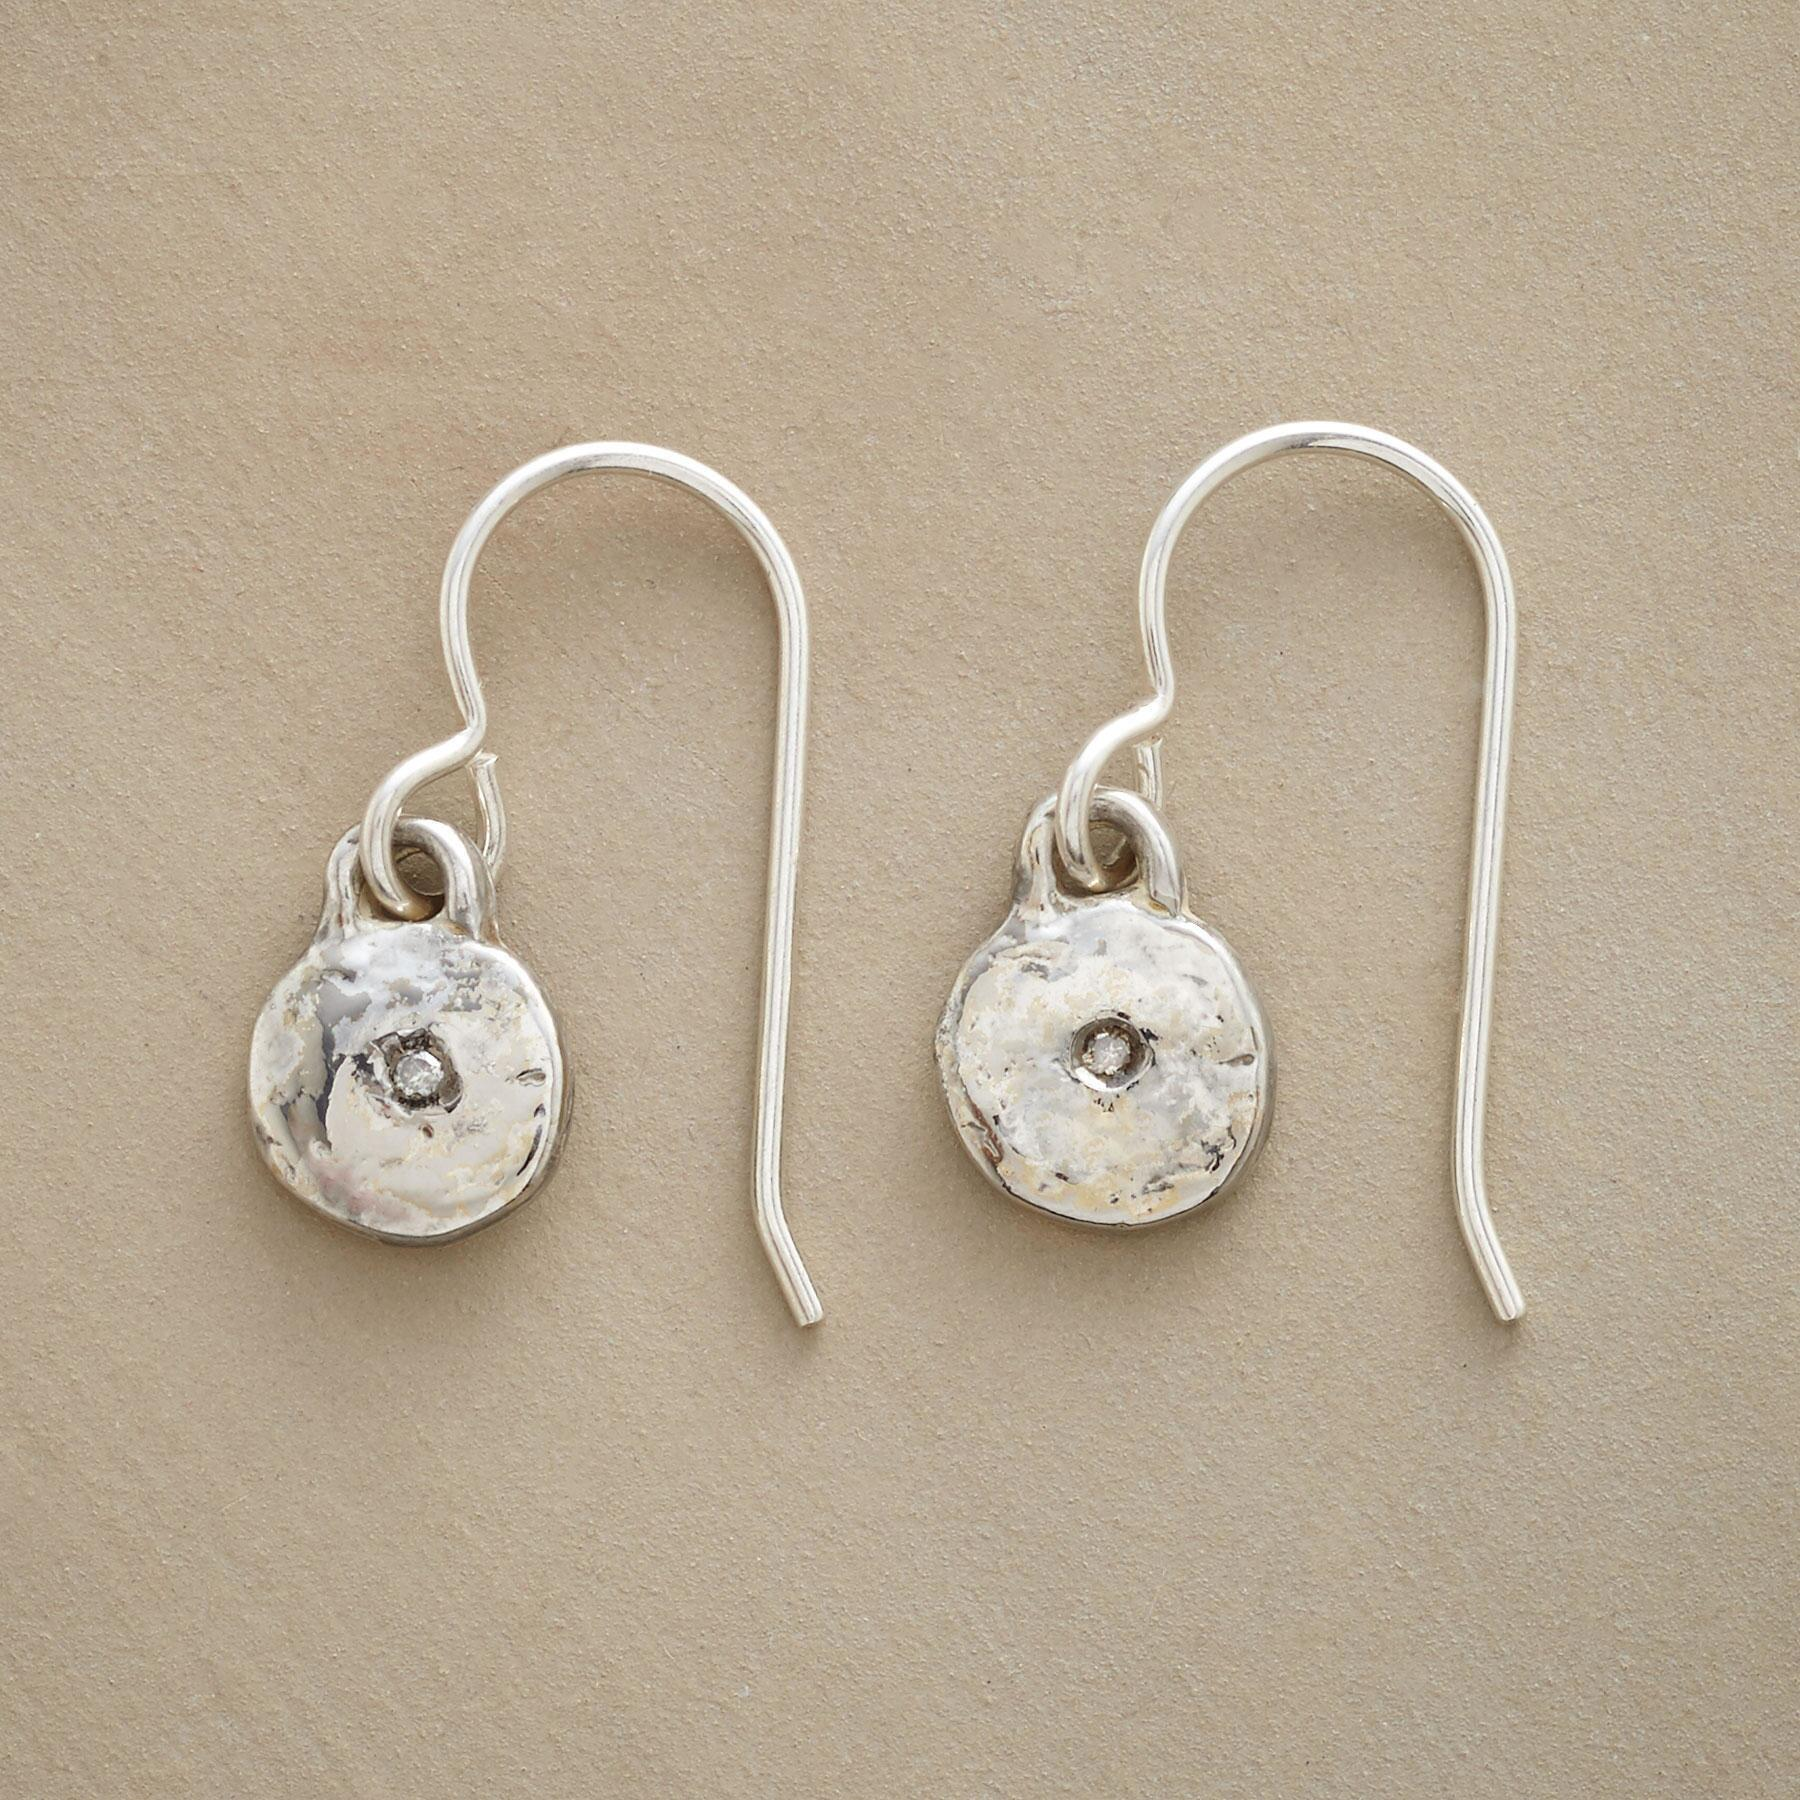 STERLING SILVER LITTLE BIT EARRINGS: View 1